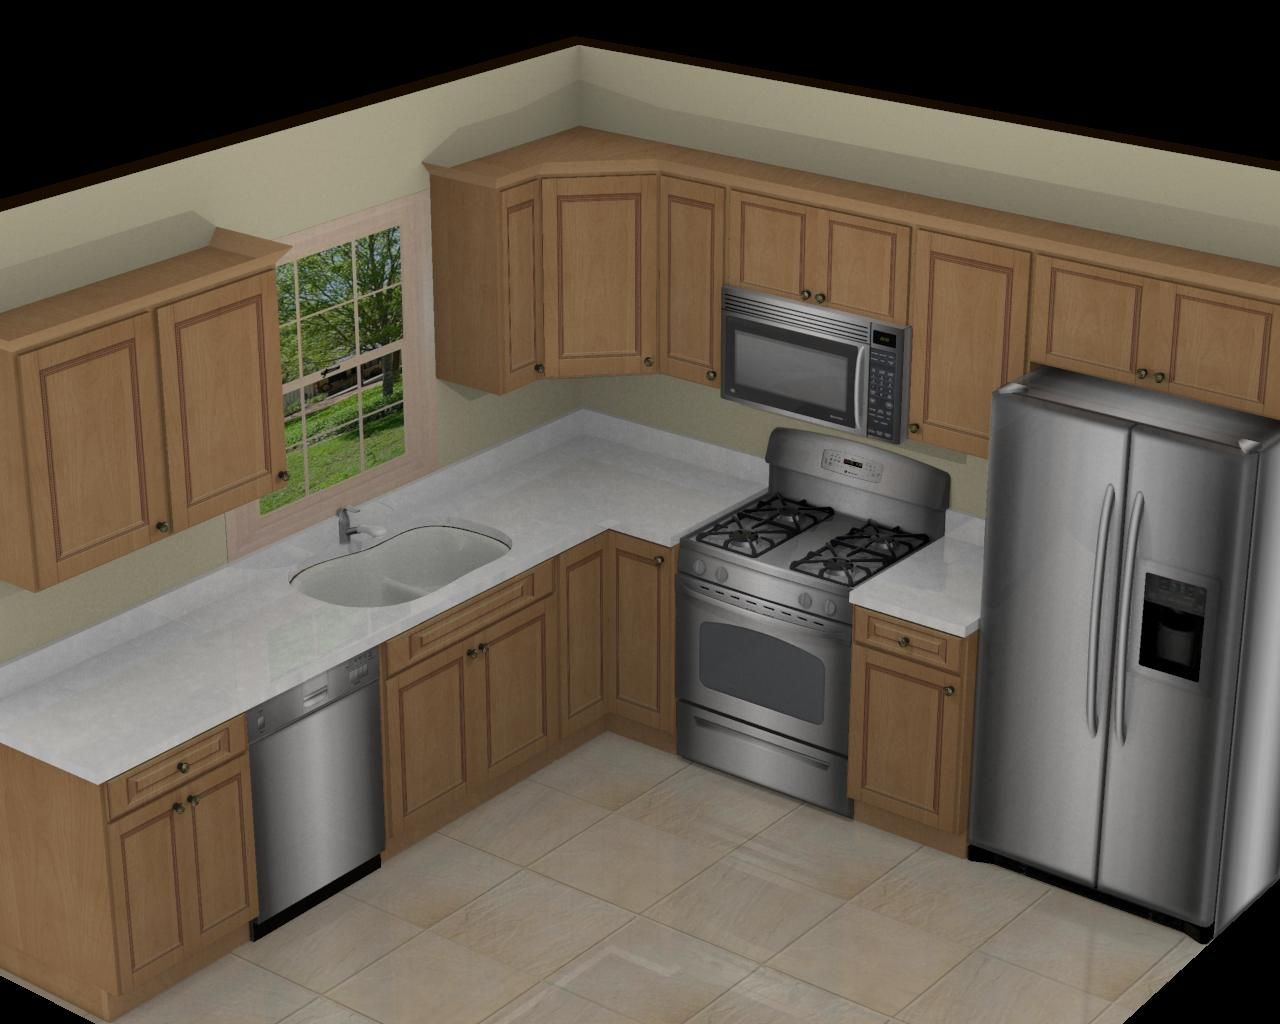 l shaped kitchen island with cabinets and design L Shaped Kitchen Designs Ideas for Your Beloved Home | Home | 10x10 kitchen, L shaped kitchen